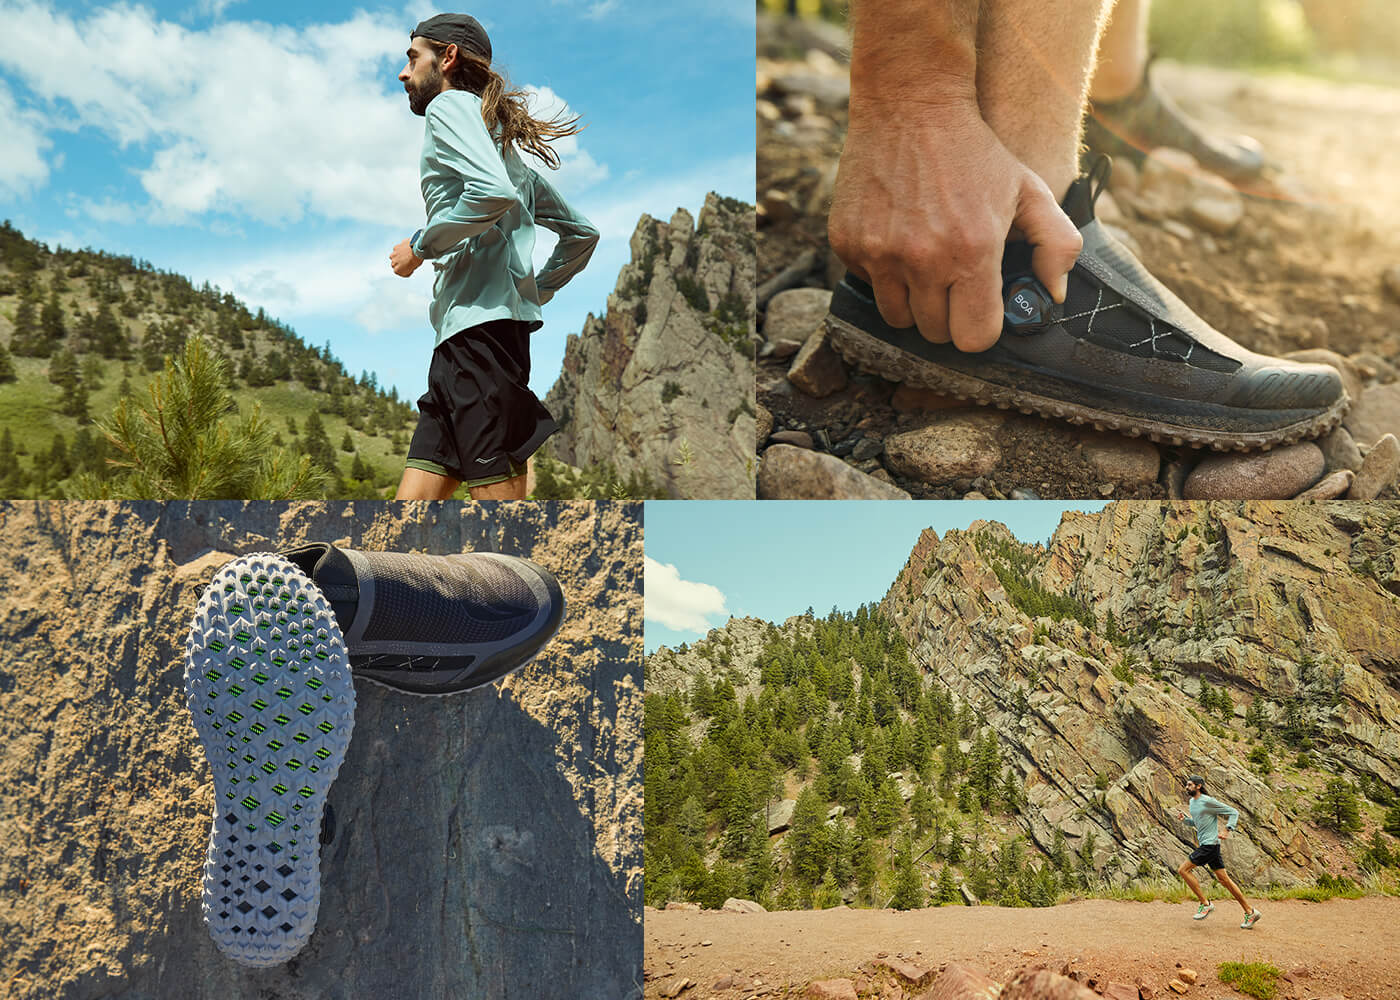 Collage of runners and shoes in nature.